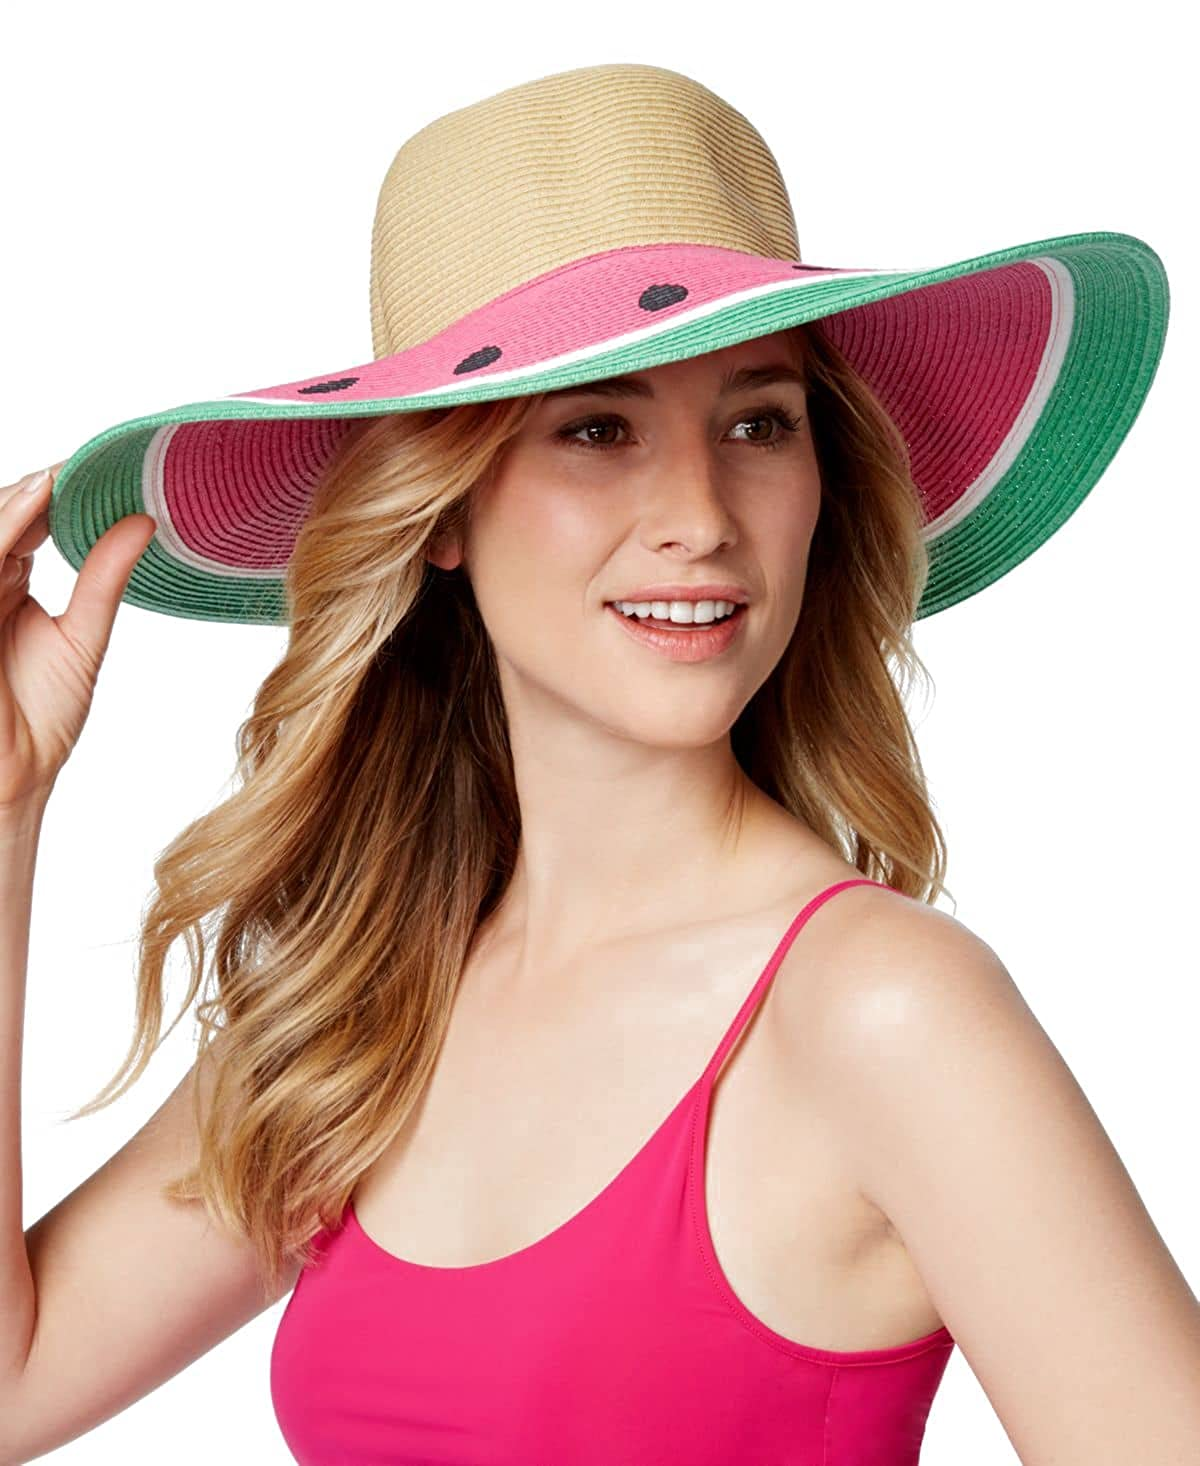 f6ea2ea7 August Hats Womens Watermelon Floppy Hat Pink Mix, One Size at Amazon  Women's Clothing store: